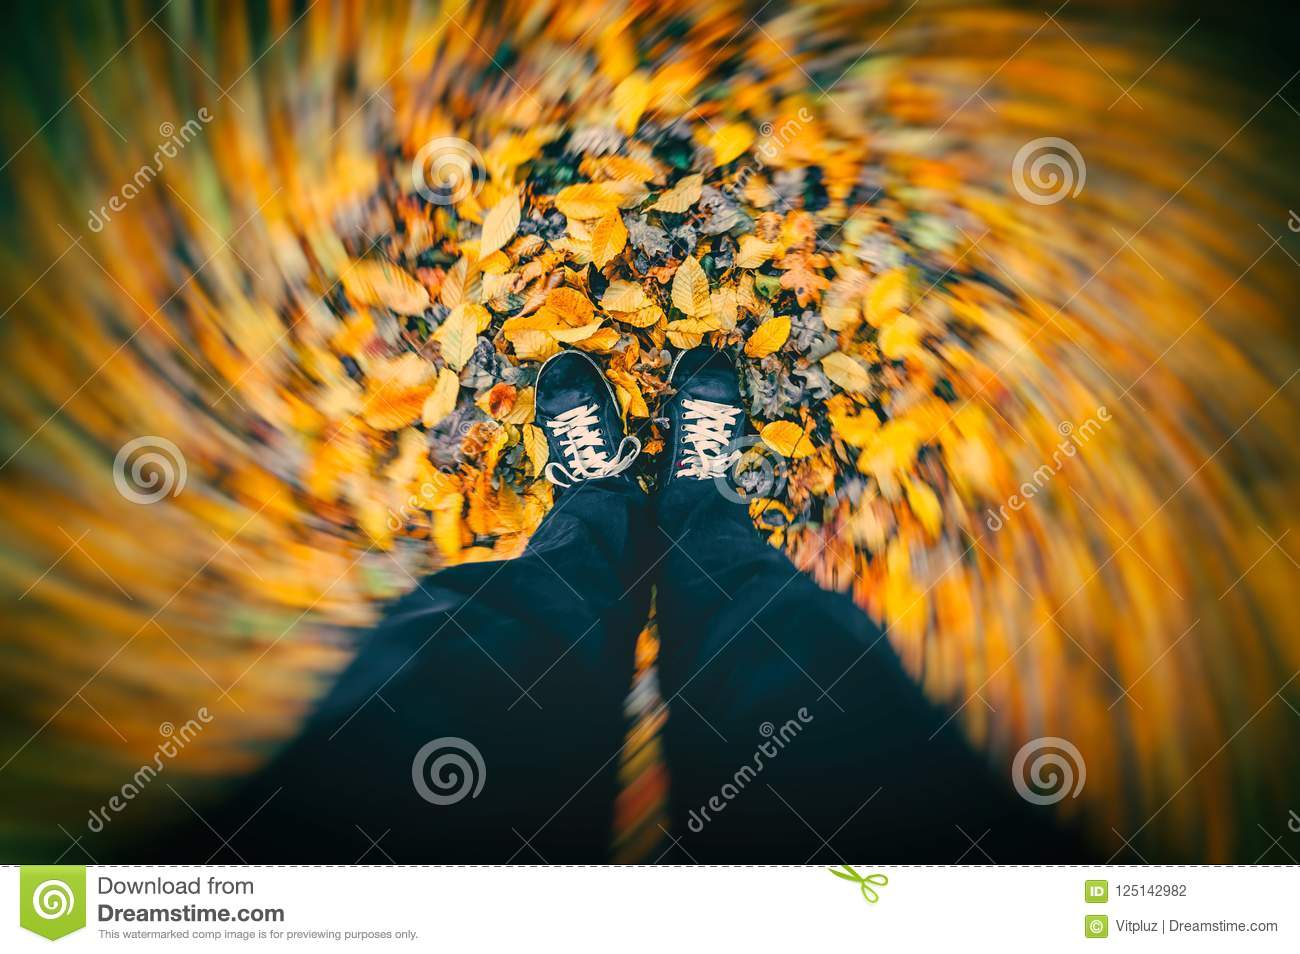 Wind blowing around man standing on dry autumn leaves